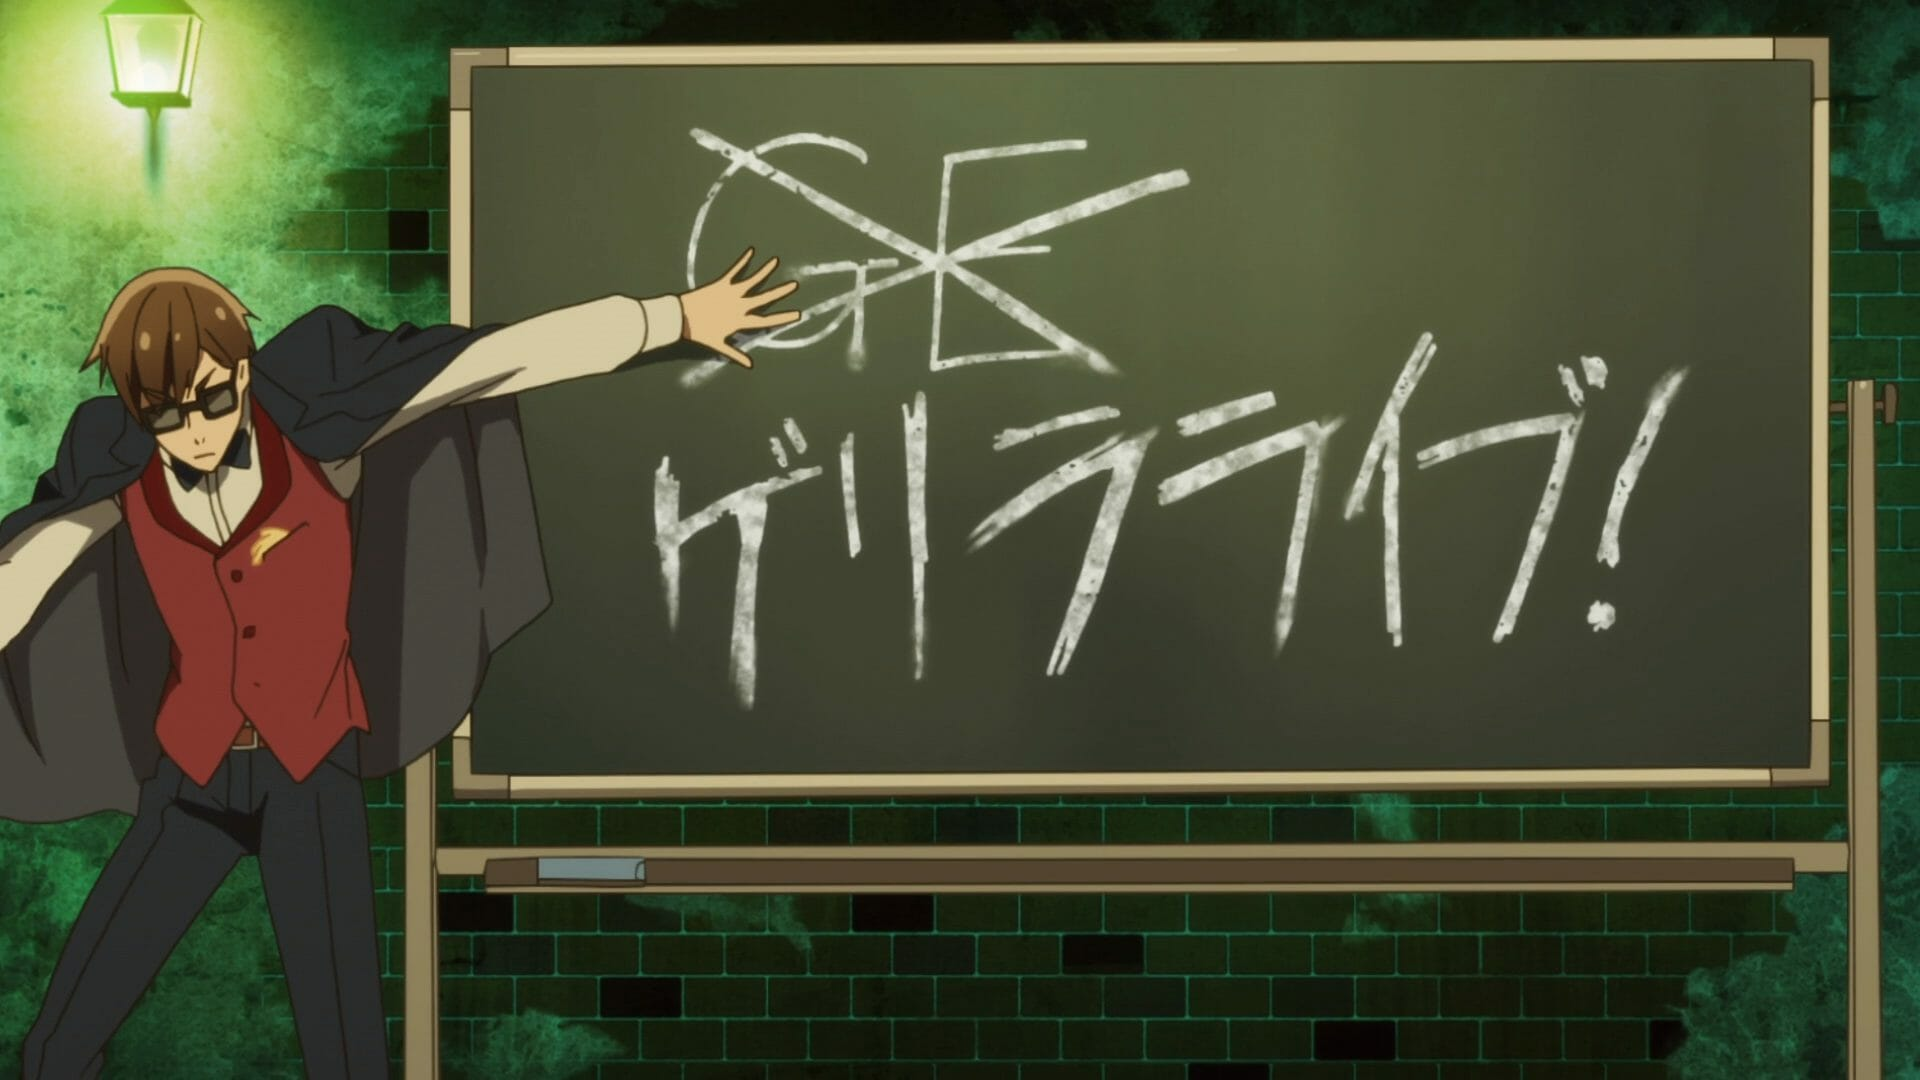 A man in a suit slams his hand on a blackboard.